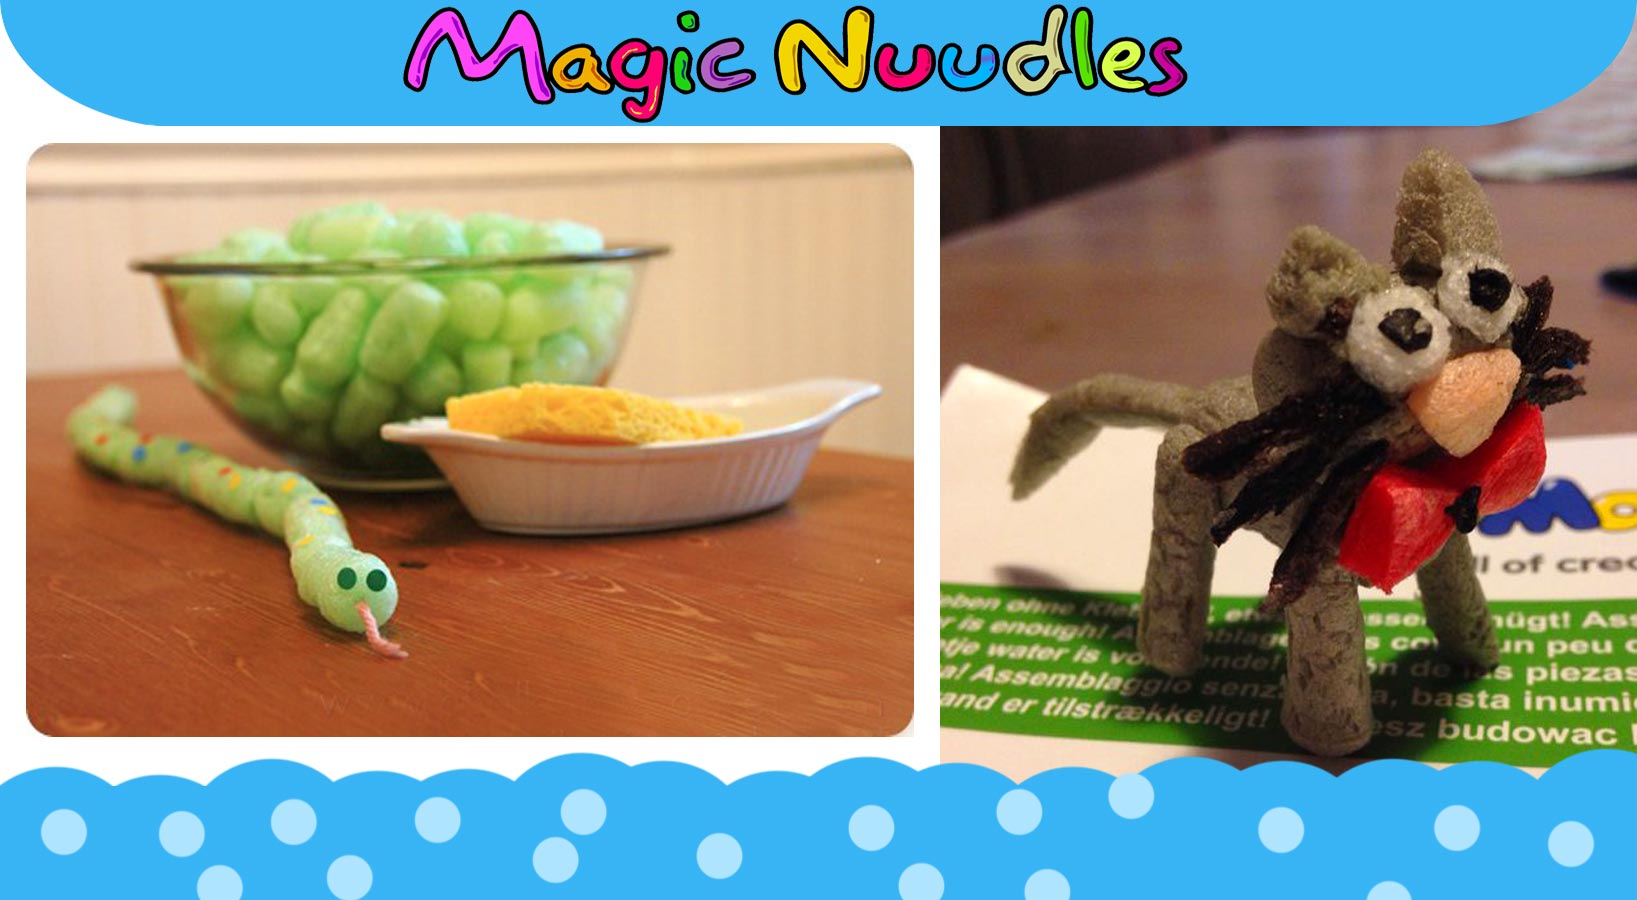 magicnoodles